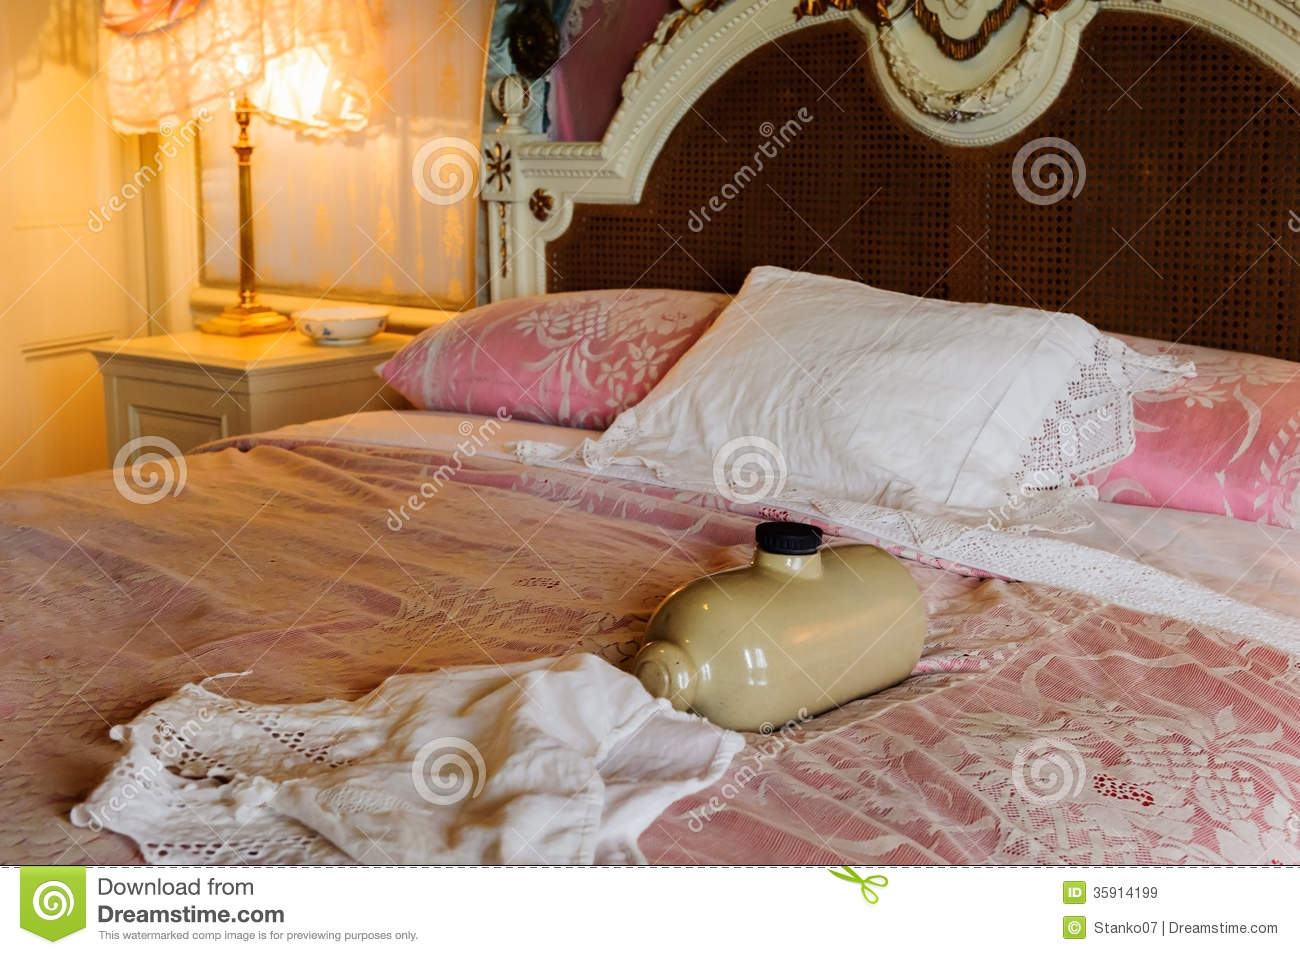 Victorian bedroom stock image. Image of ancient, elegance - 35914199